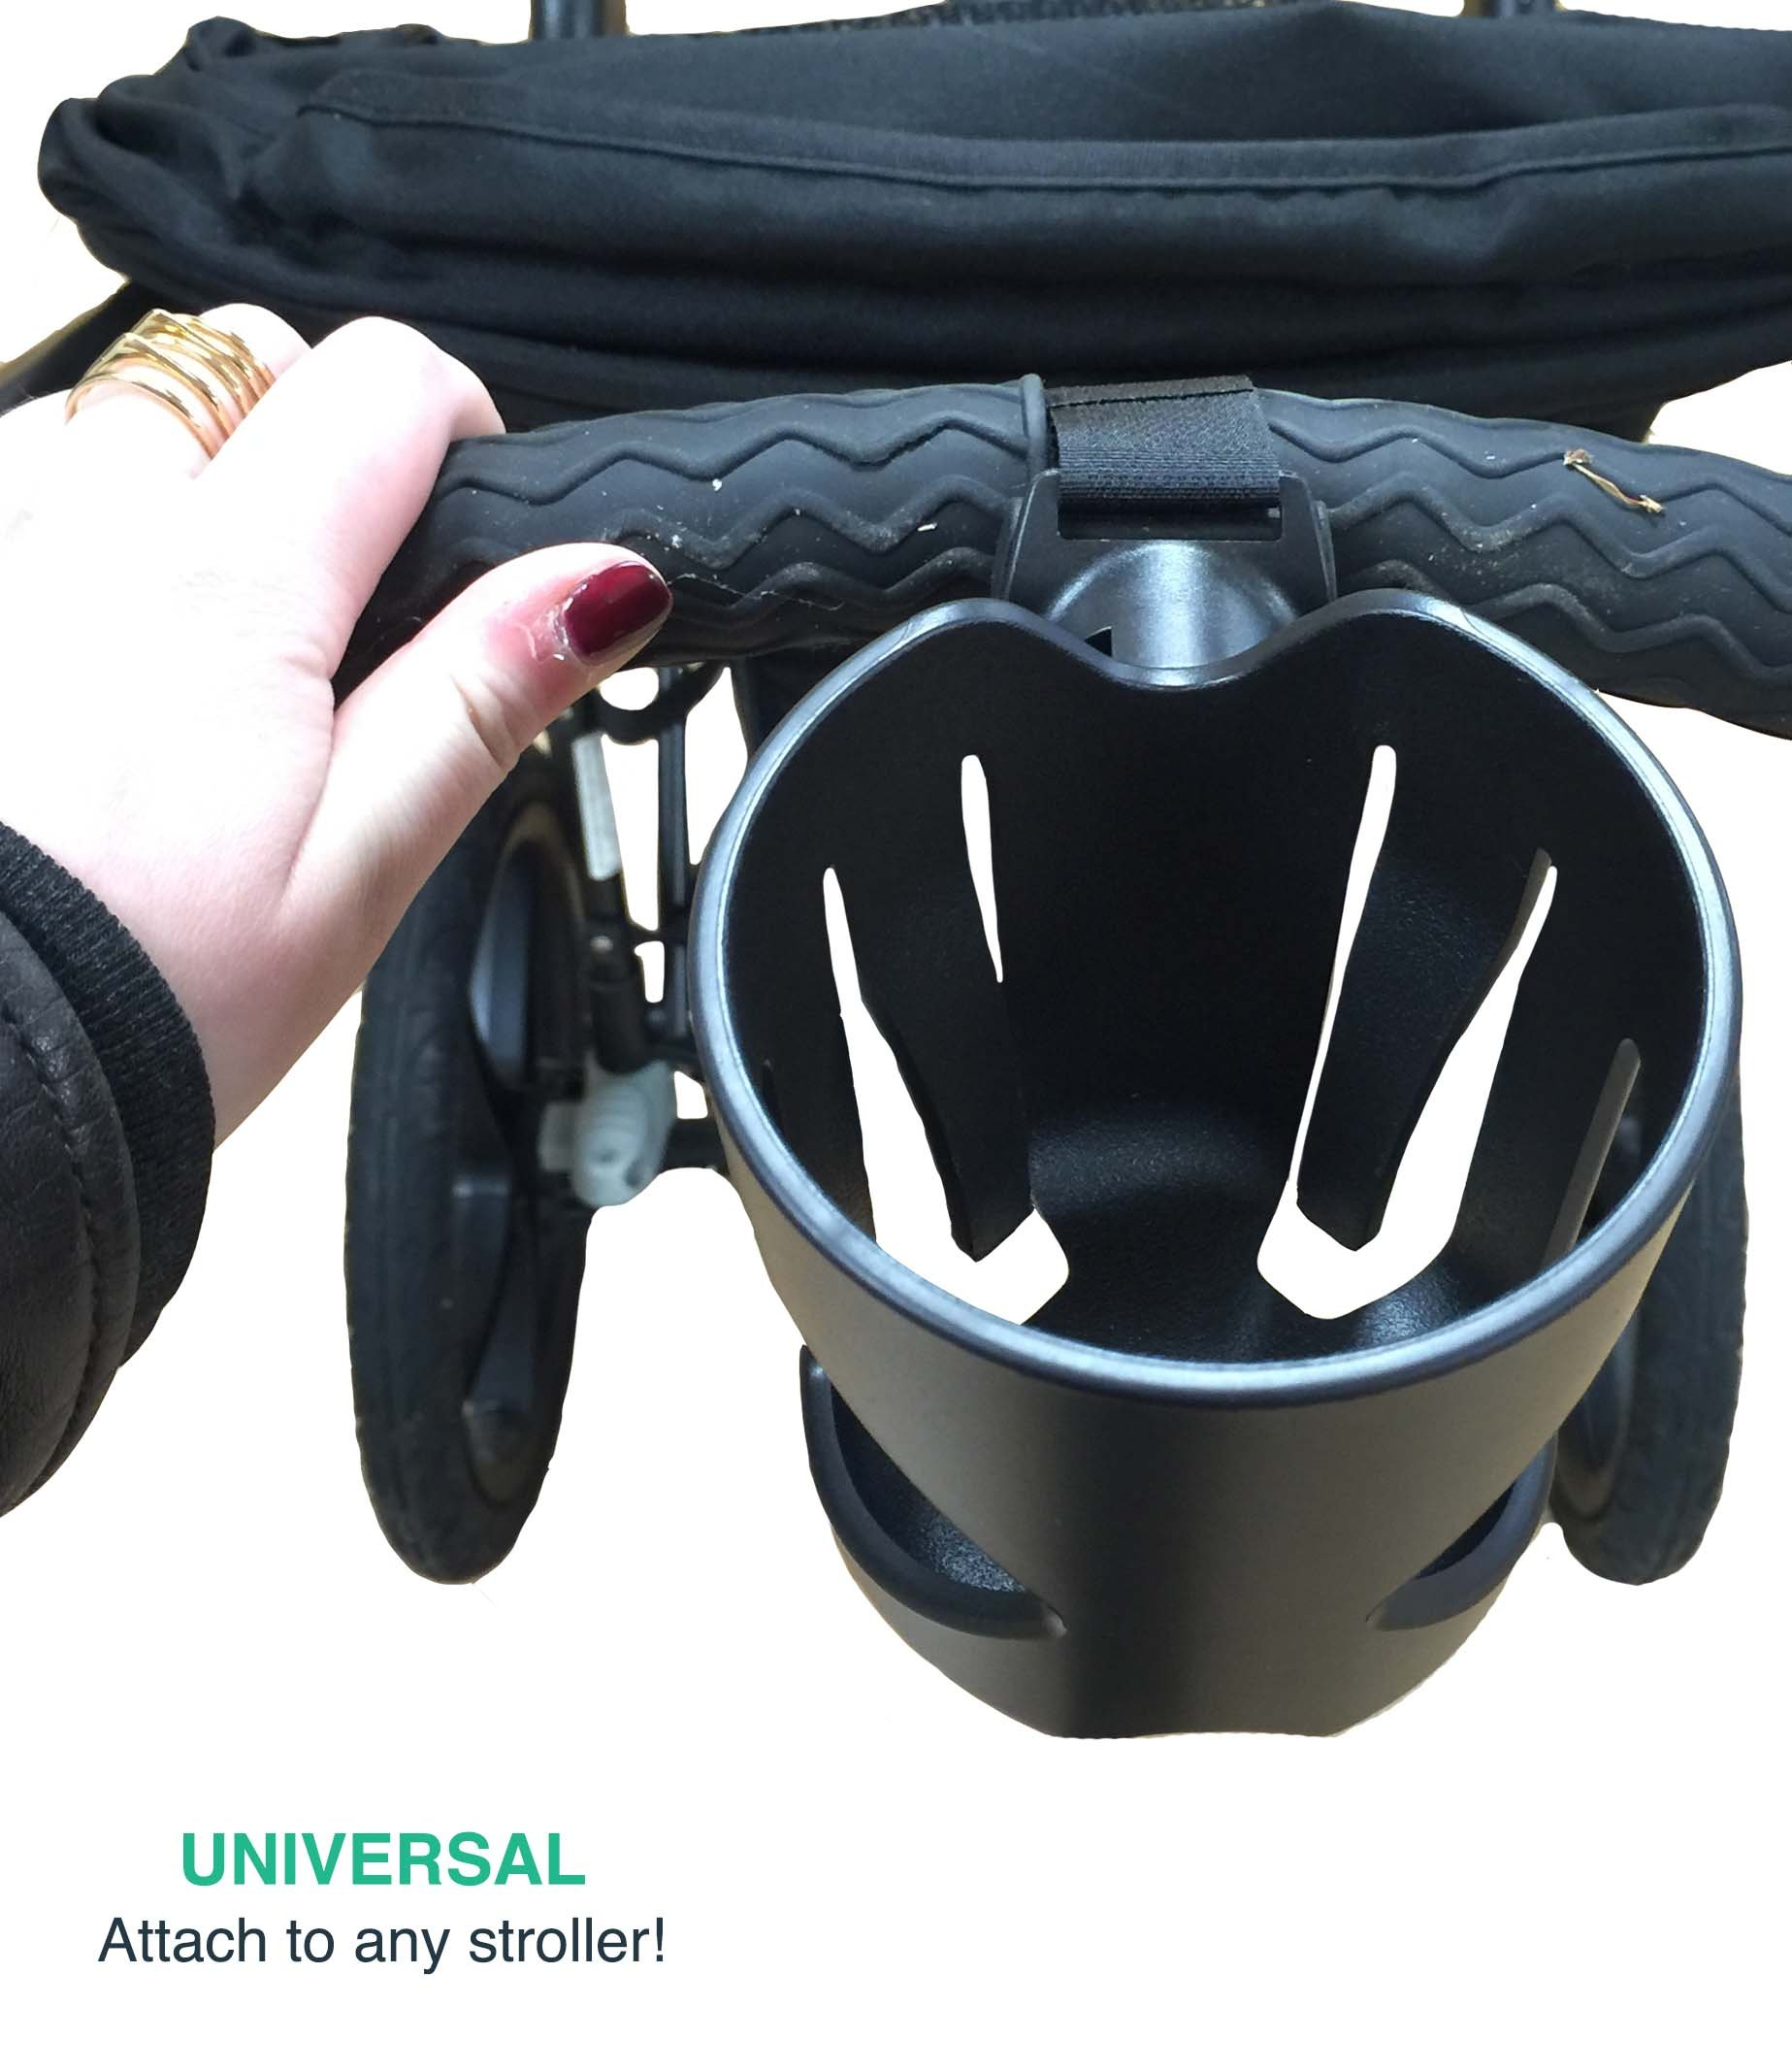 Replacement for Universal Stroller Cup Holder, Fits BabyHome, Baby Jogger, Britax, Bugaboo, Bumbleride, Chicco & More, by Think Crucial by Think Crucial (Image #2)